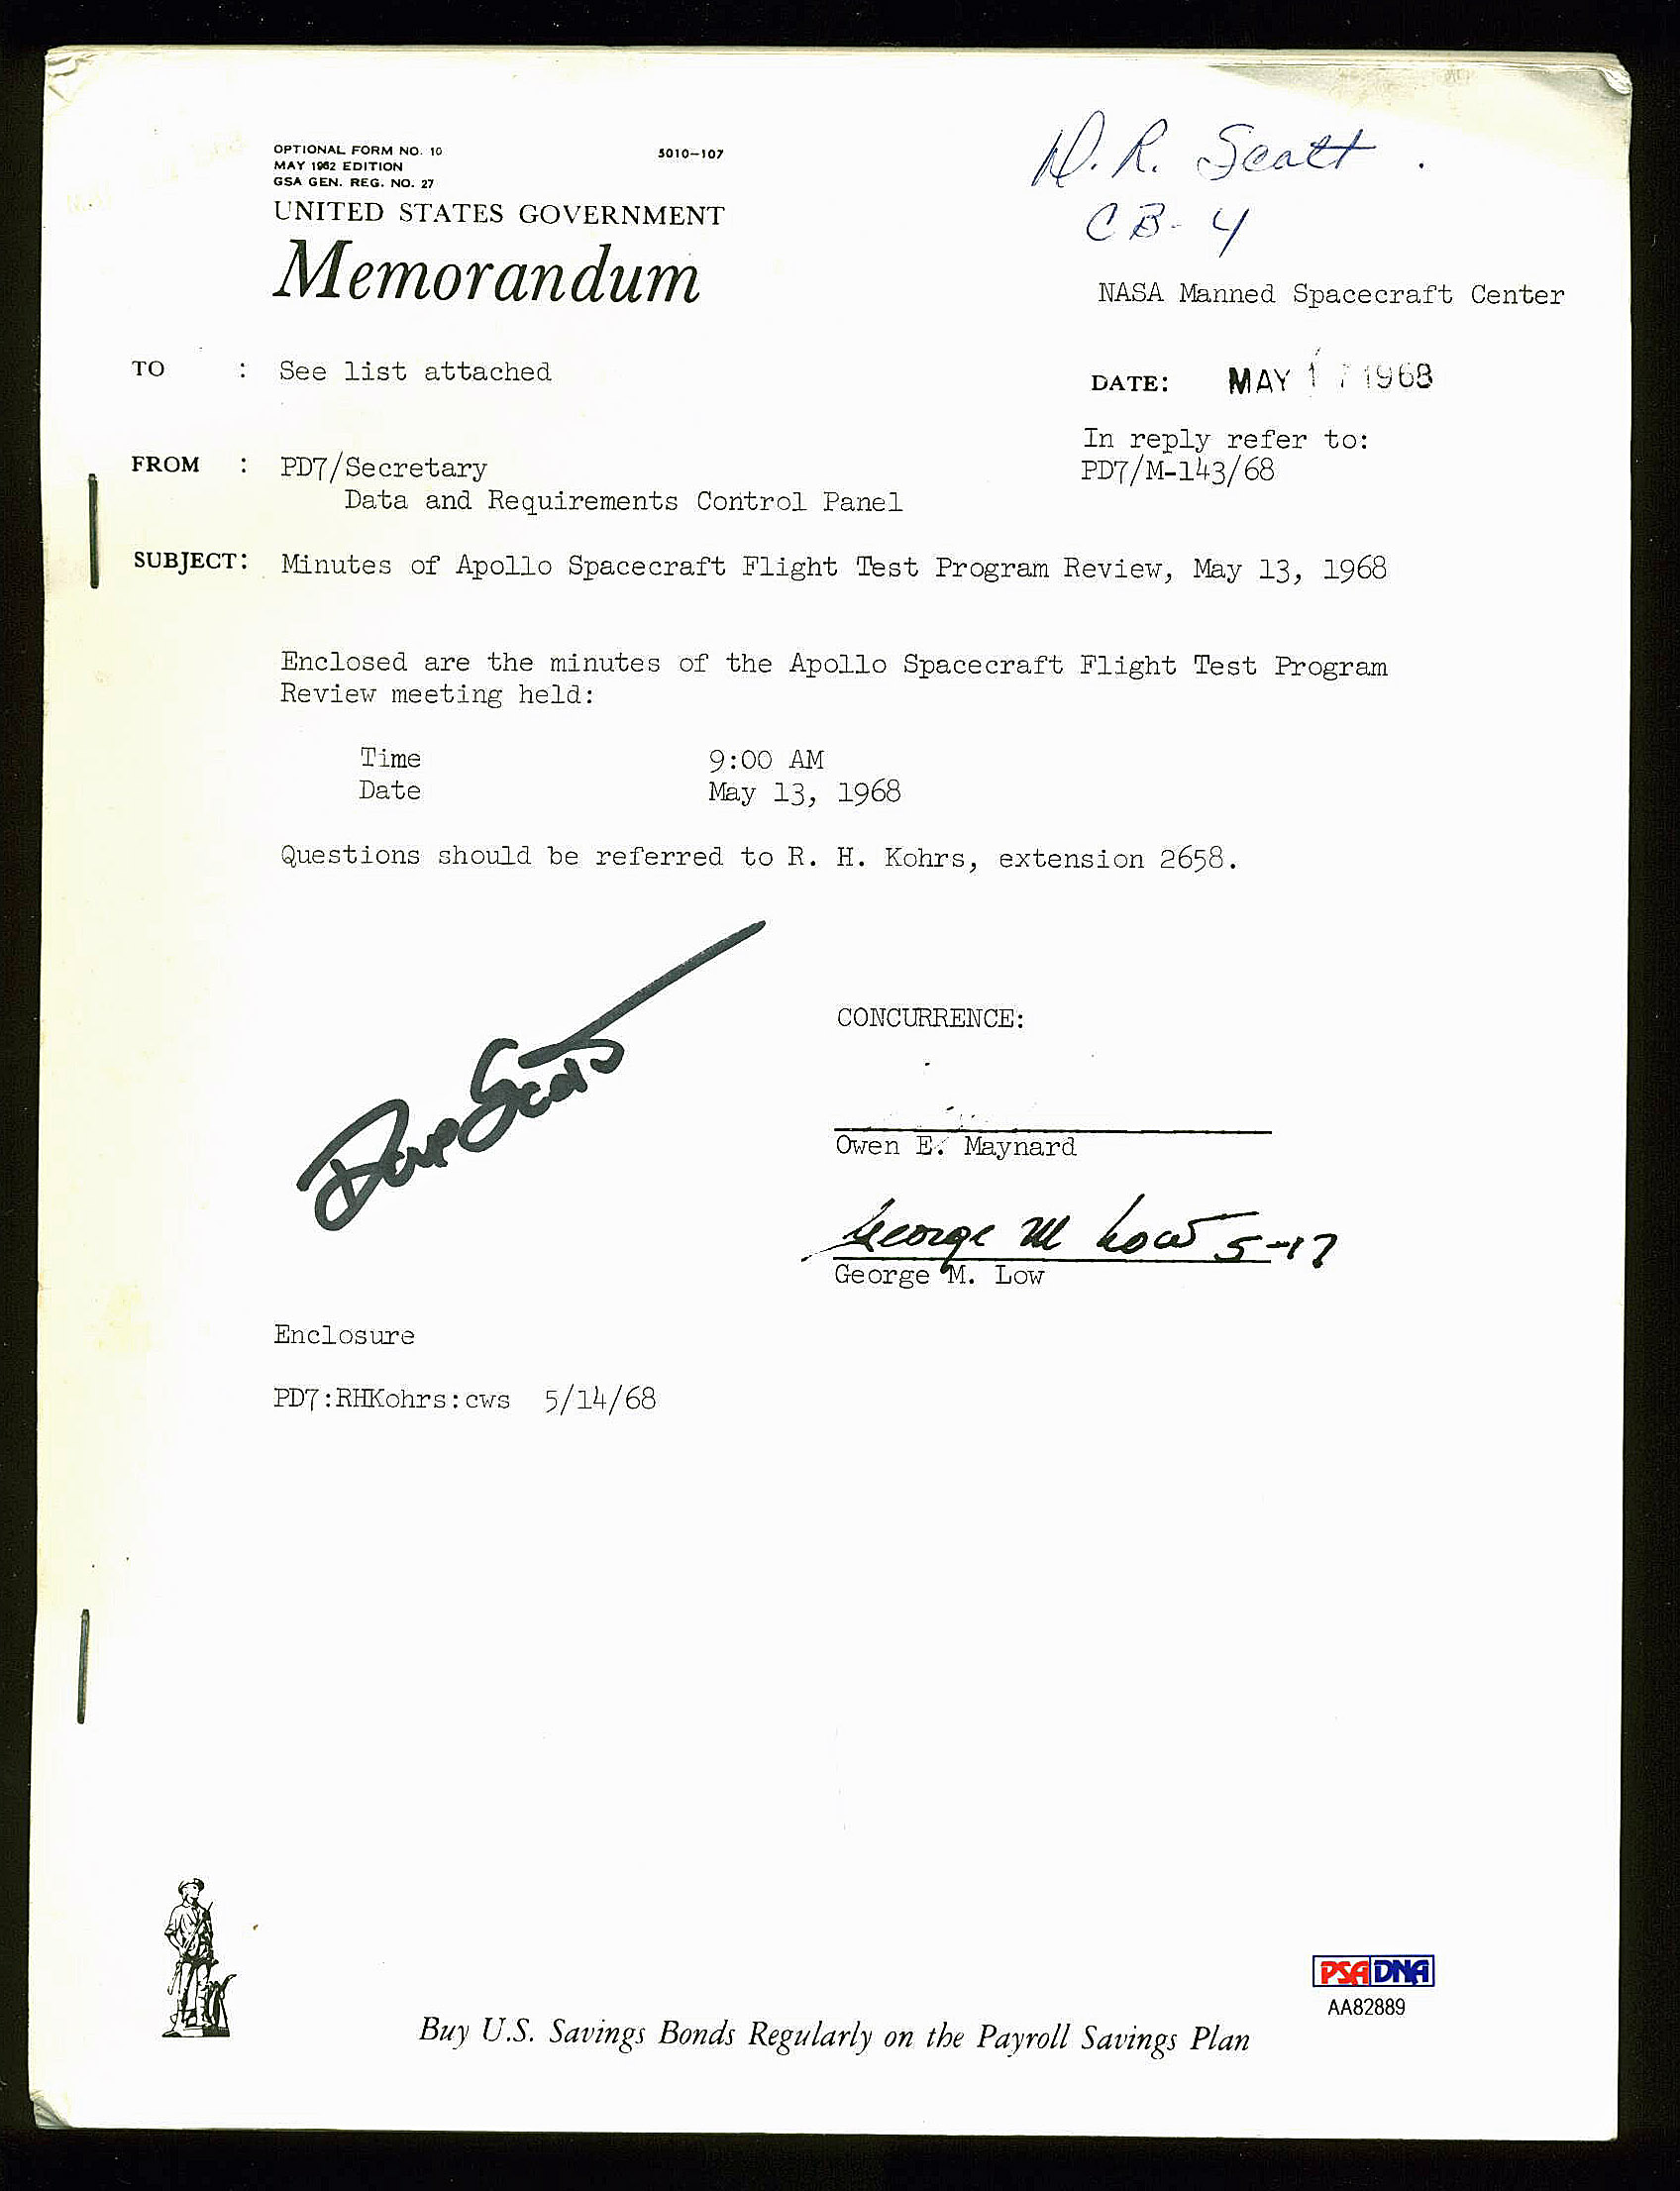 David Scott Authentic Signed Used 1968 Apollo Spacecraft Review PSA/DNA #AA82889